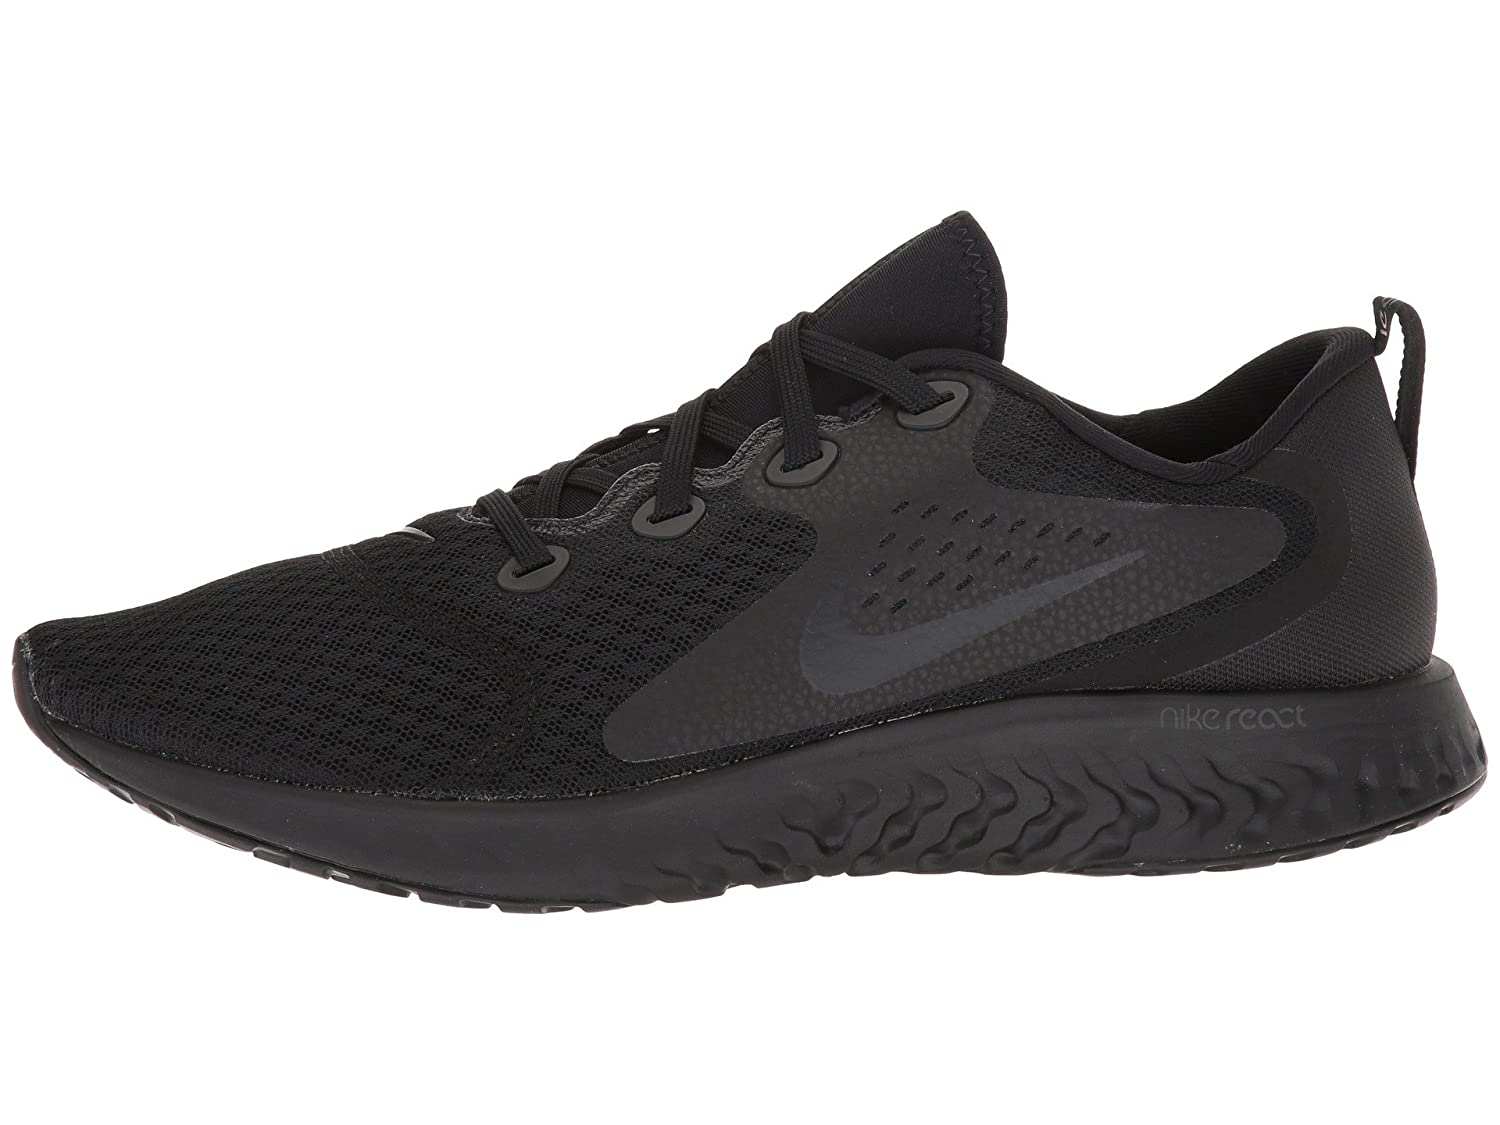 NIKE Men's Legend React Running Shoe B078JP44C2 10.5 D(M) US|Black